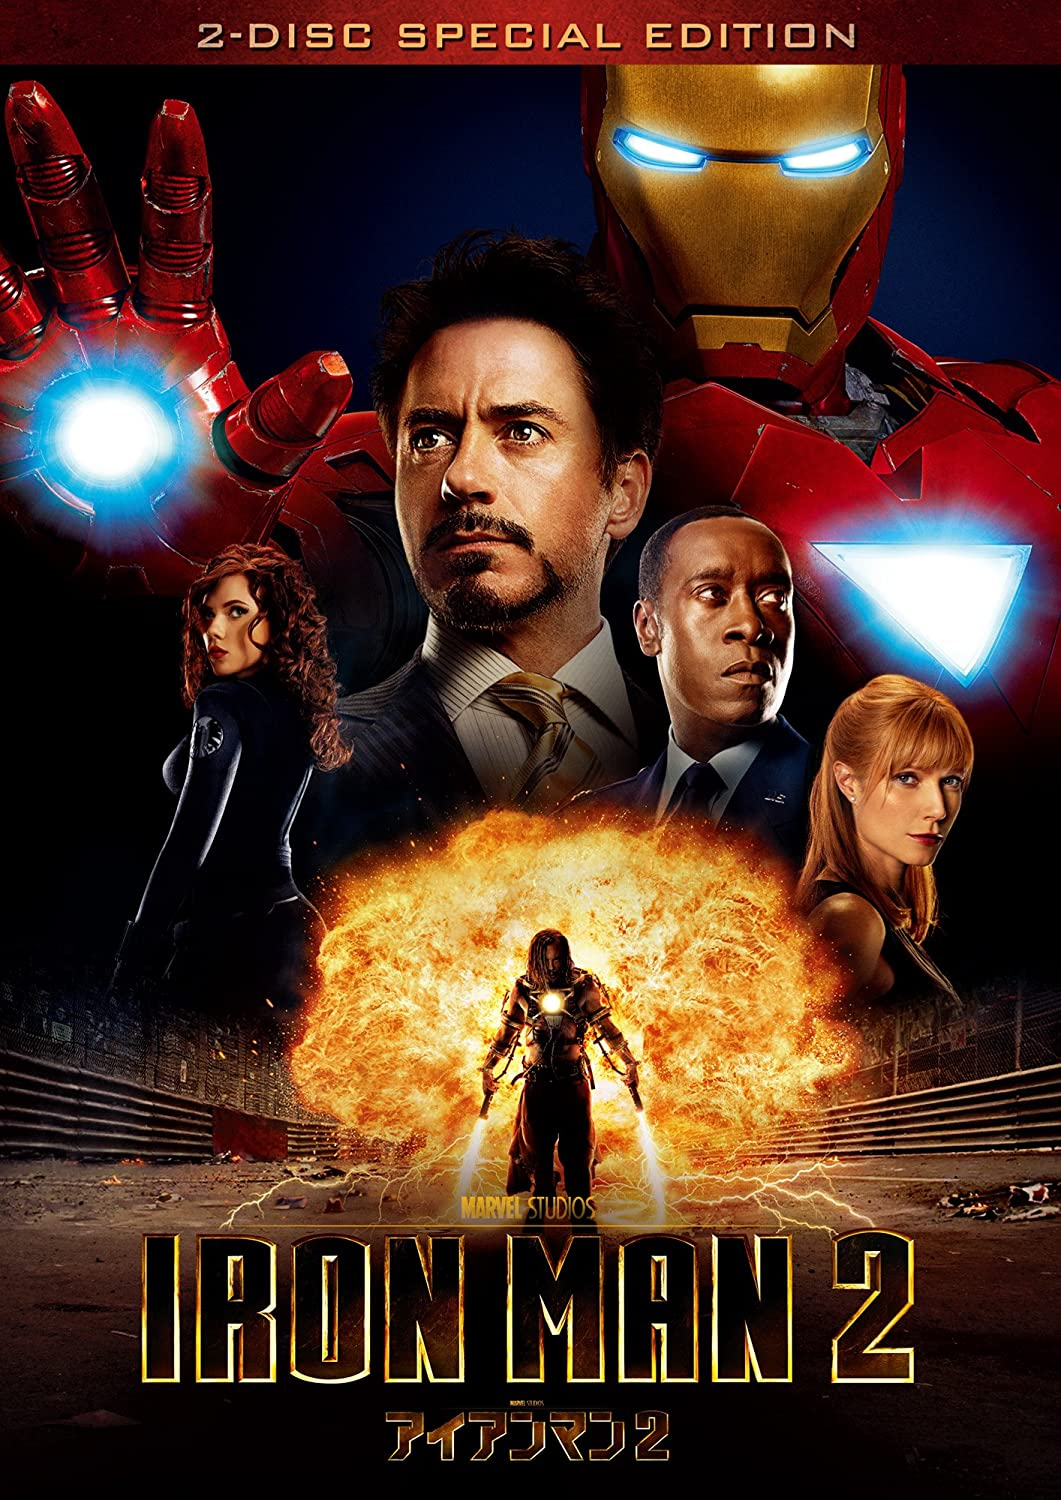 Iron Man 2 [Ltd. Special] [Alemania] [DVD]: Amazon.es: Movie/Film [Collector Edition]: Cine y Series TV